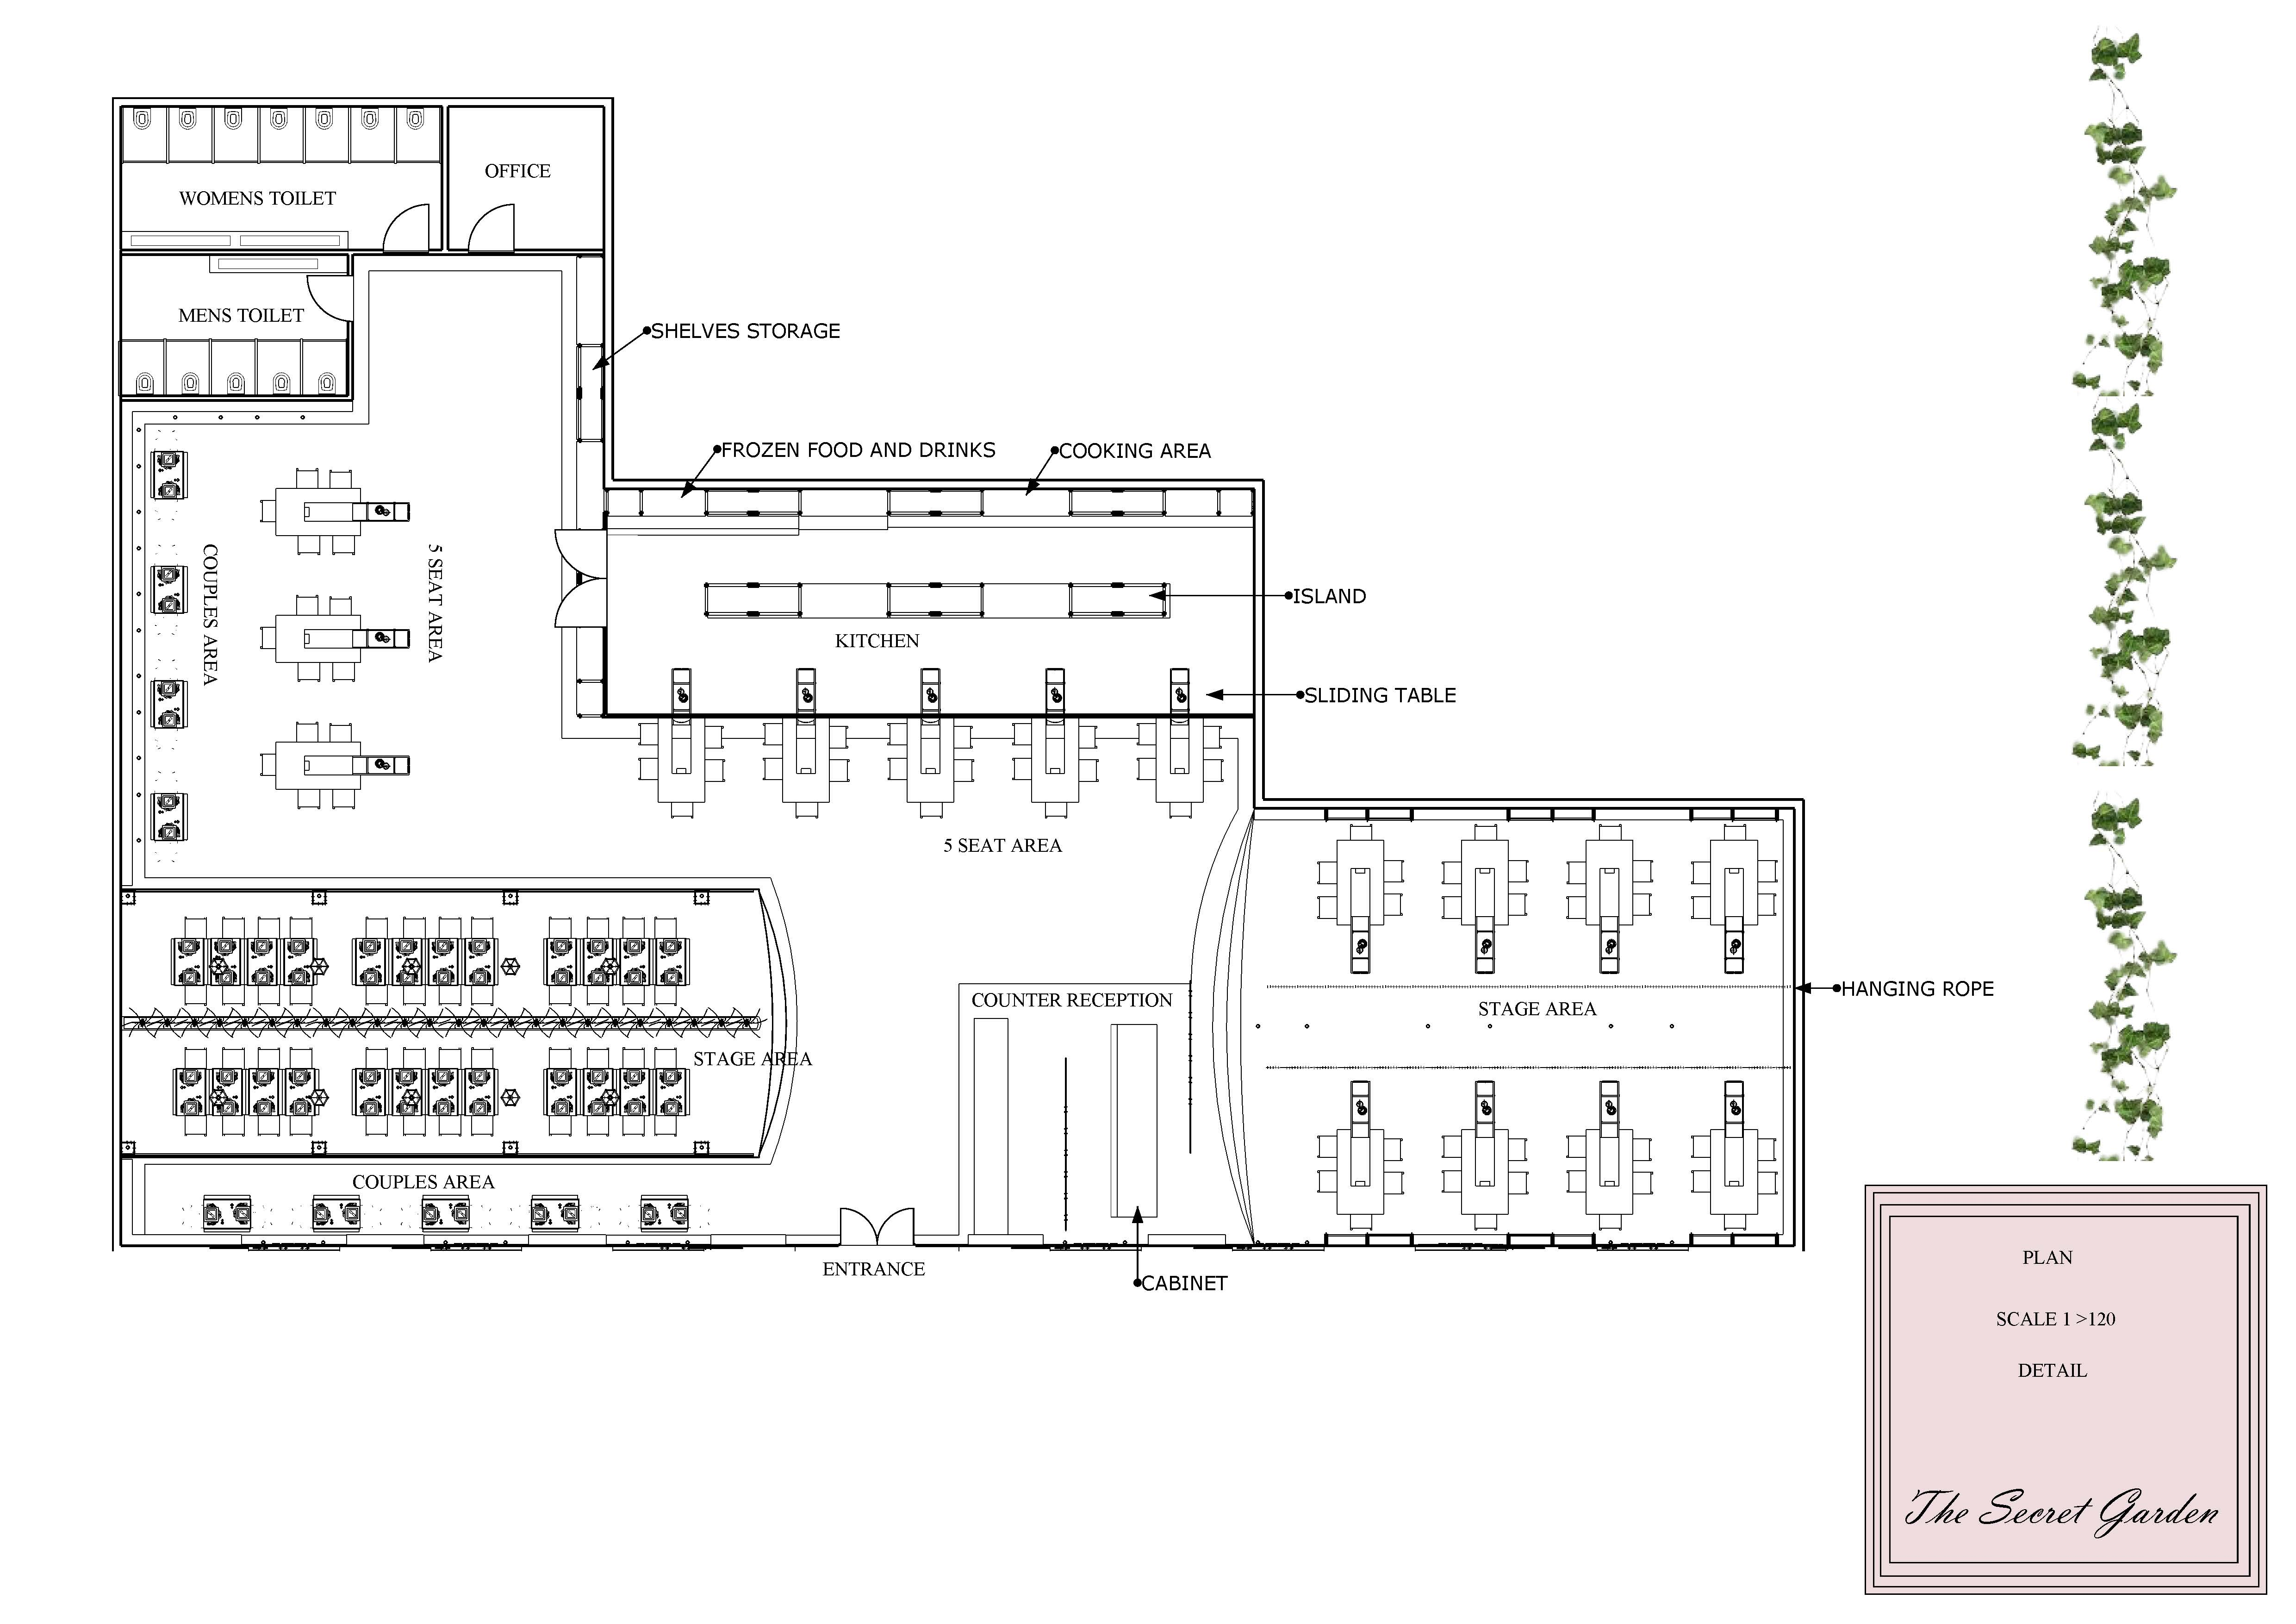 Restaurant floor plan layout with kitchen included